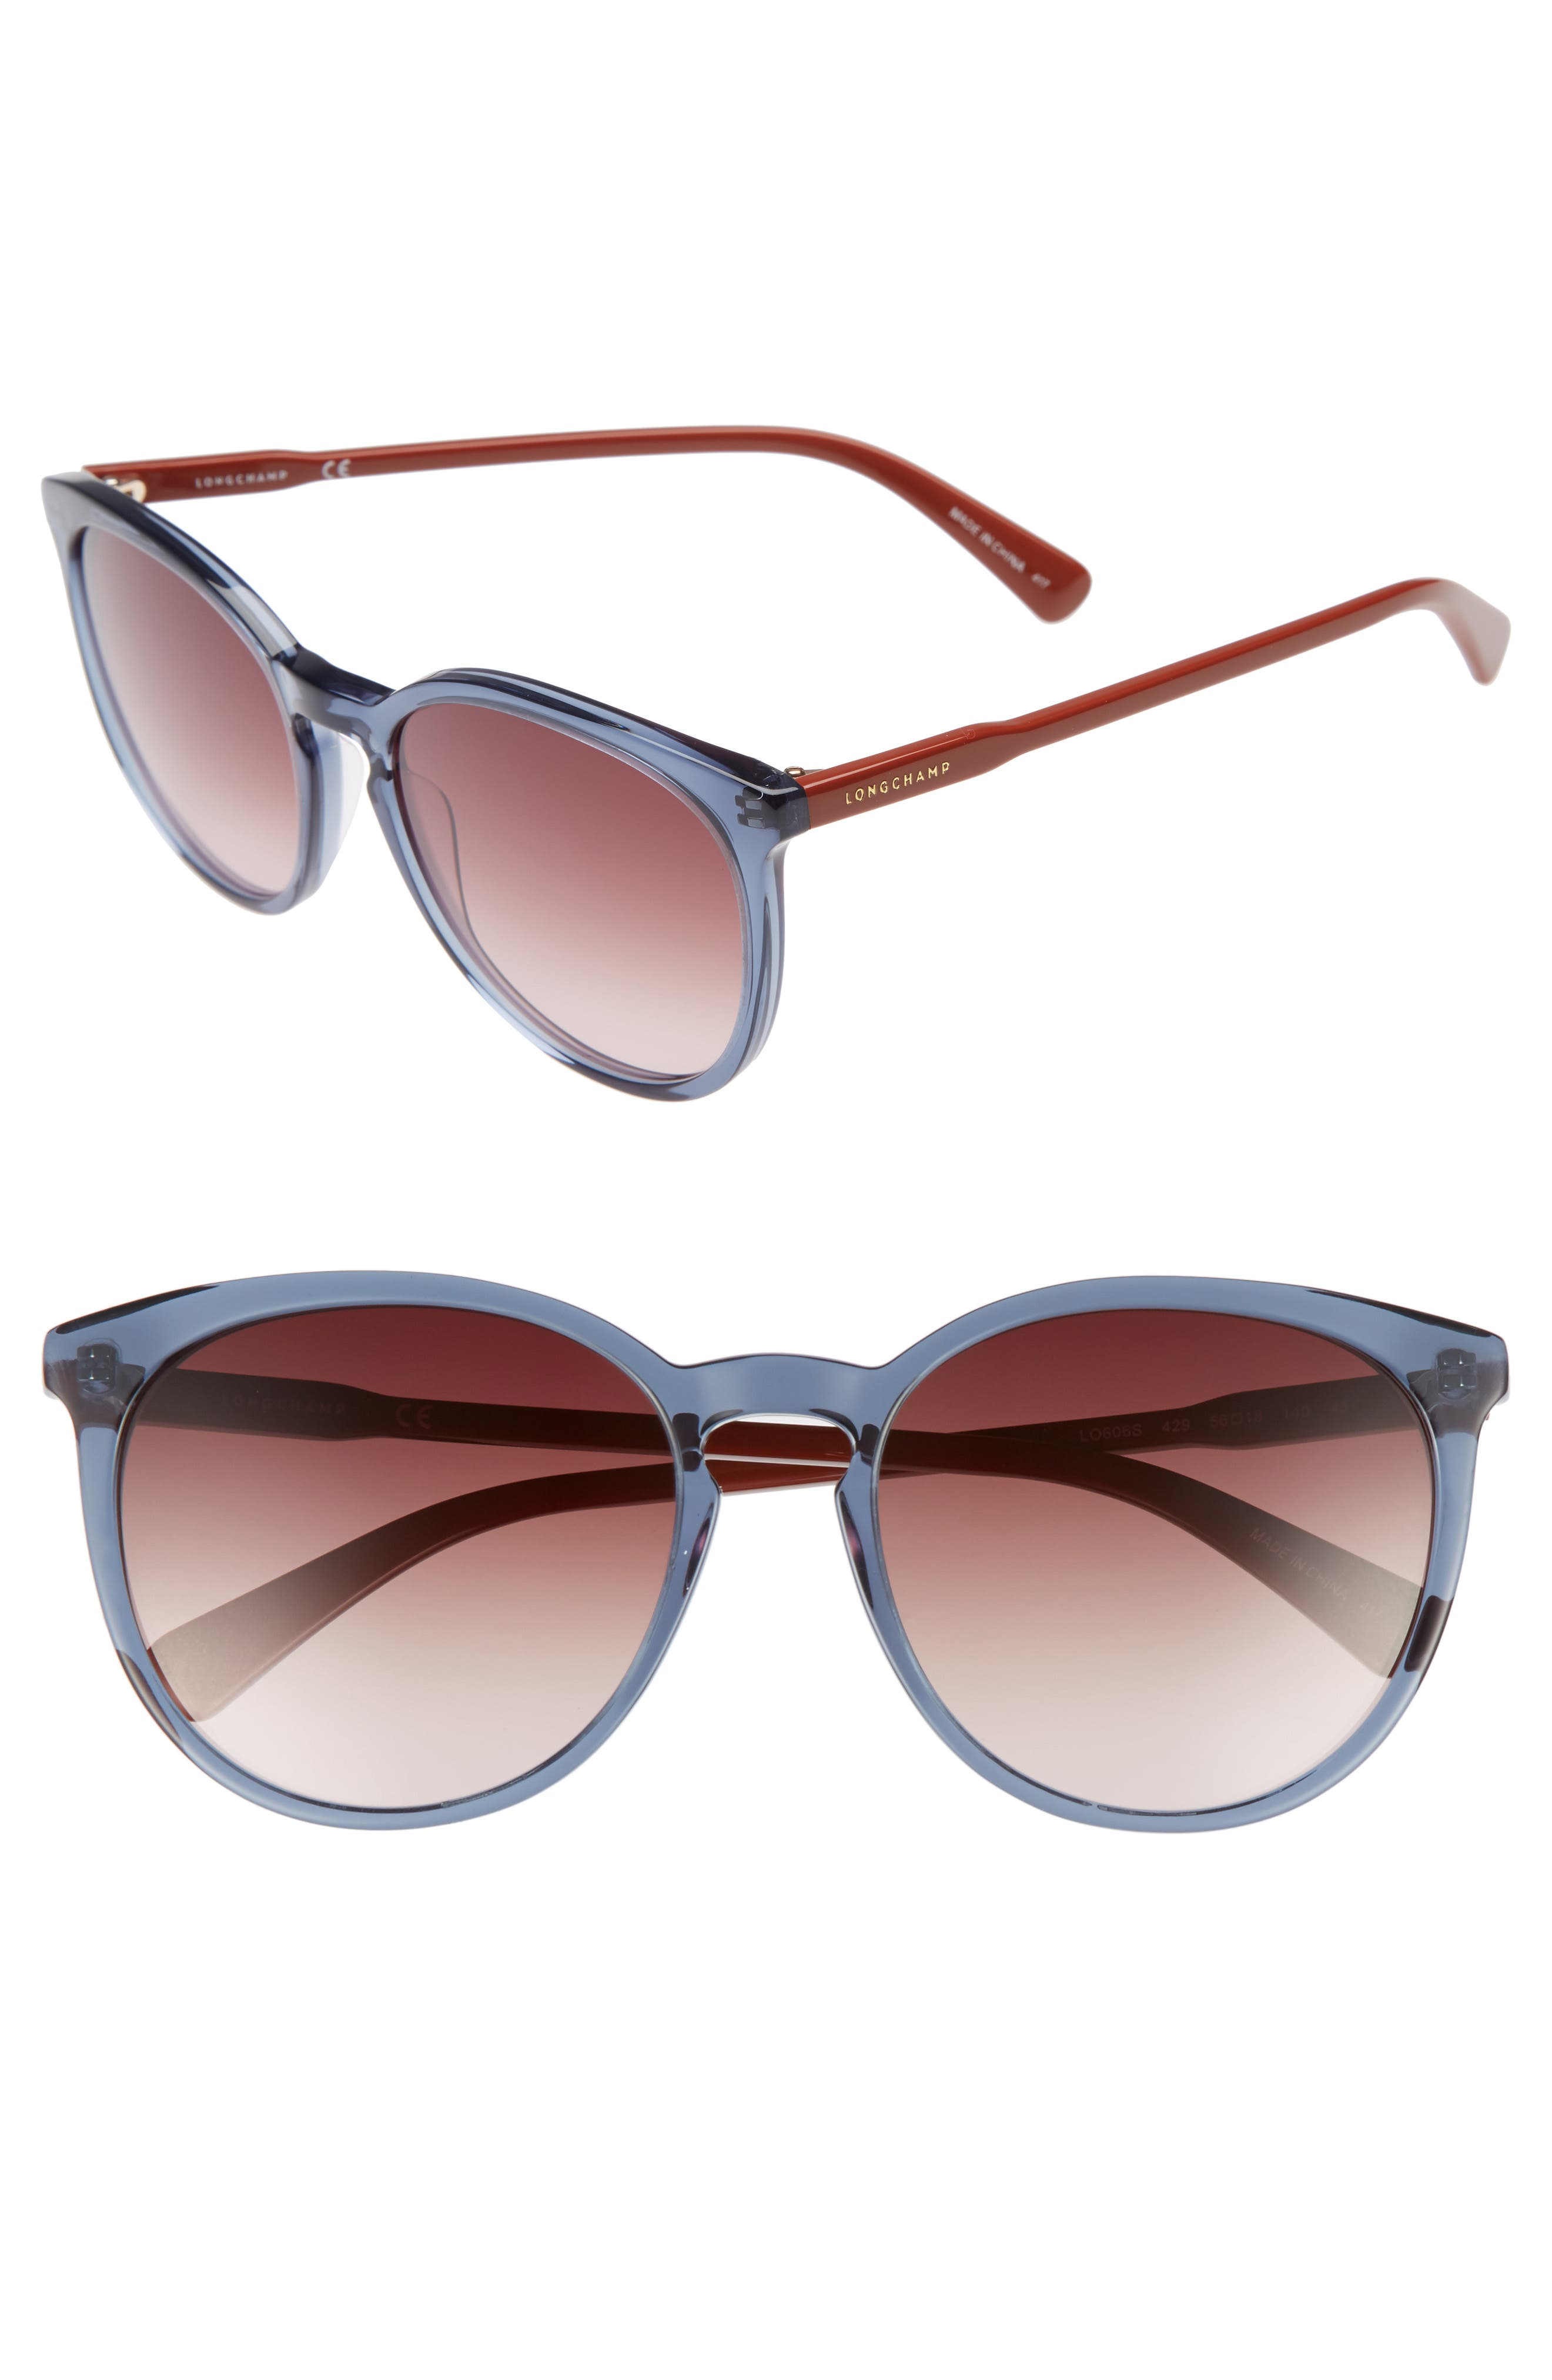 56mm Round Sunglasses,                             Main thumbnail 1, color,                             Petrol Berry